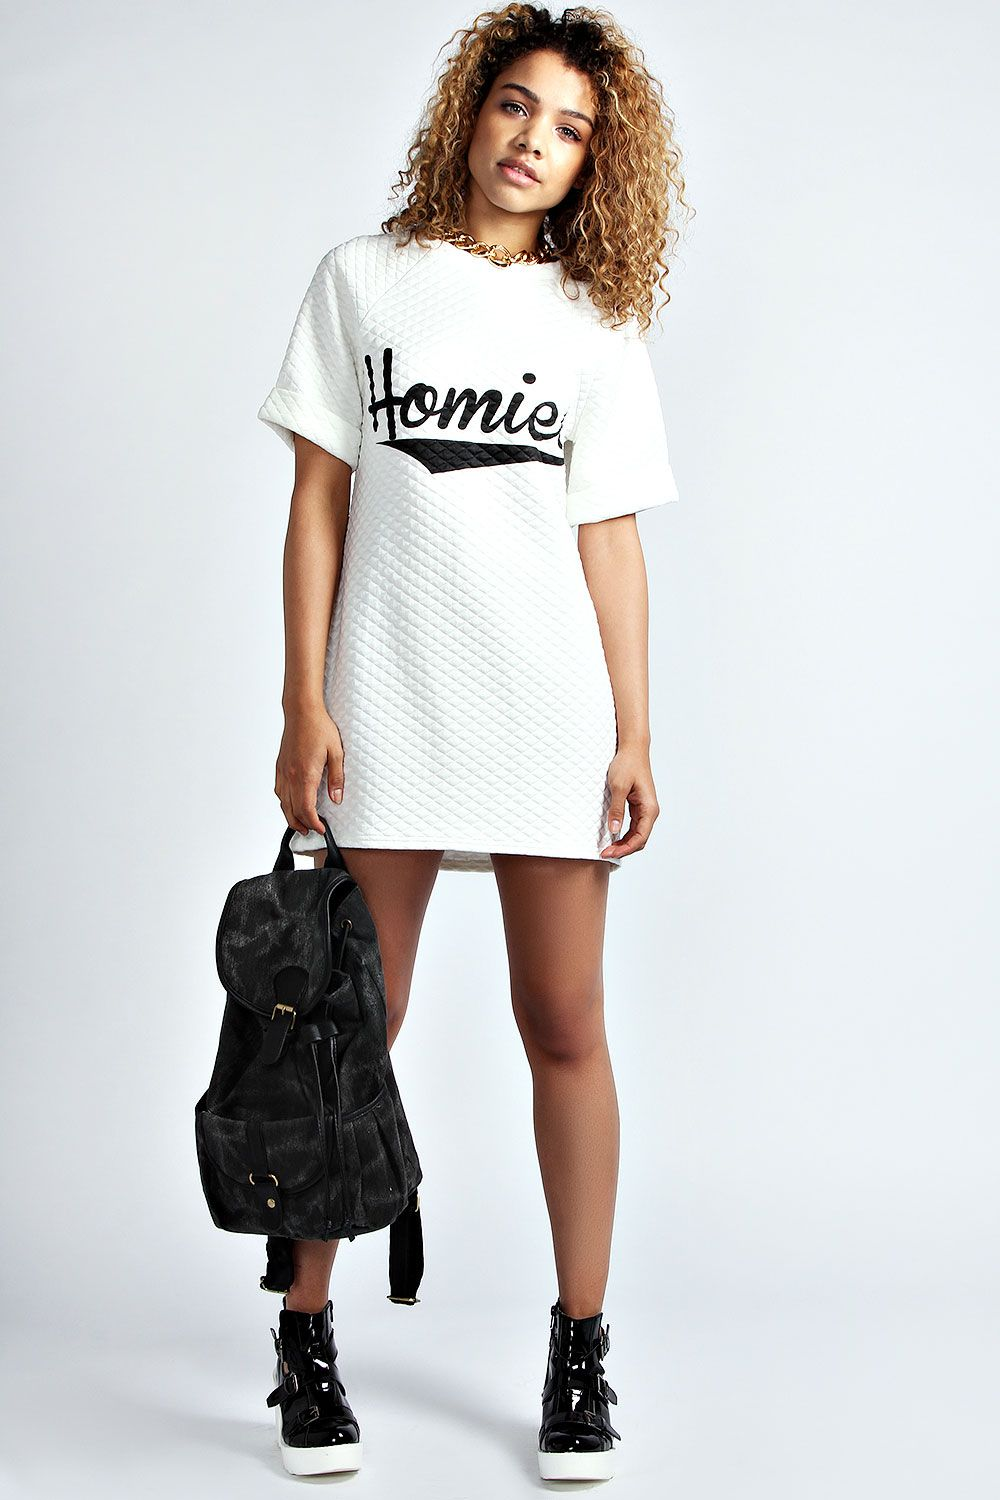 Homie Quilted TShirt Dress. Urban Fashion. Hip Hop Fashion. Swag. Dope 711fe5f940